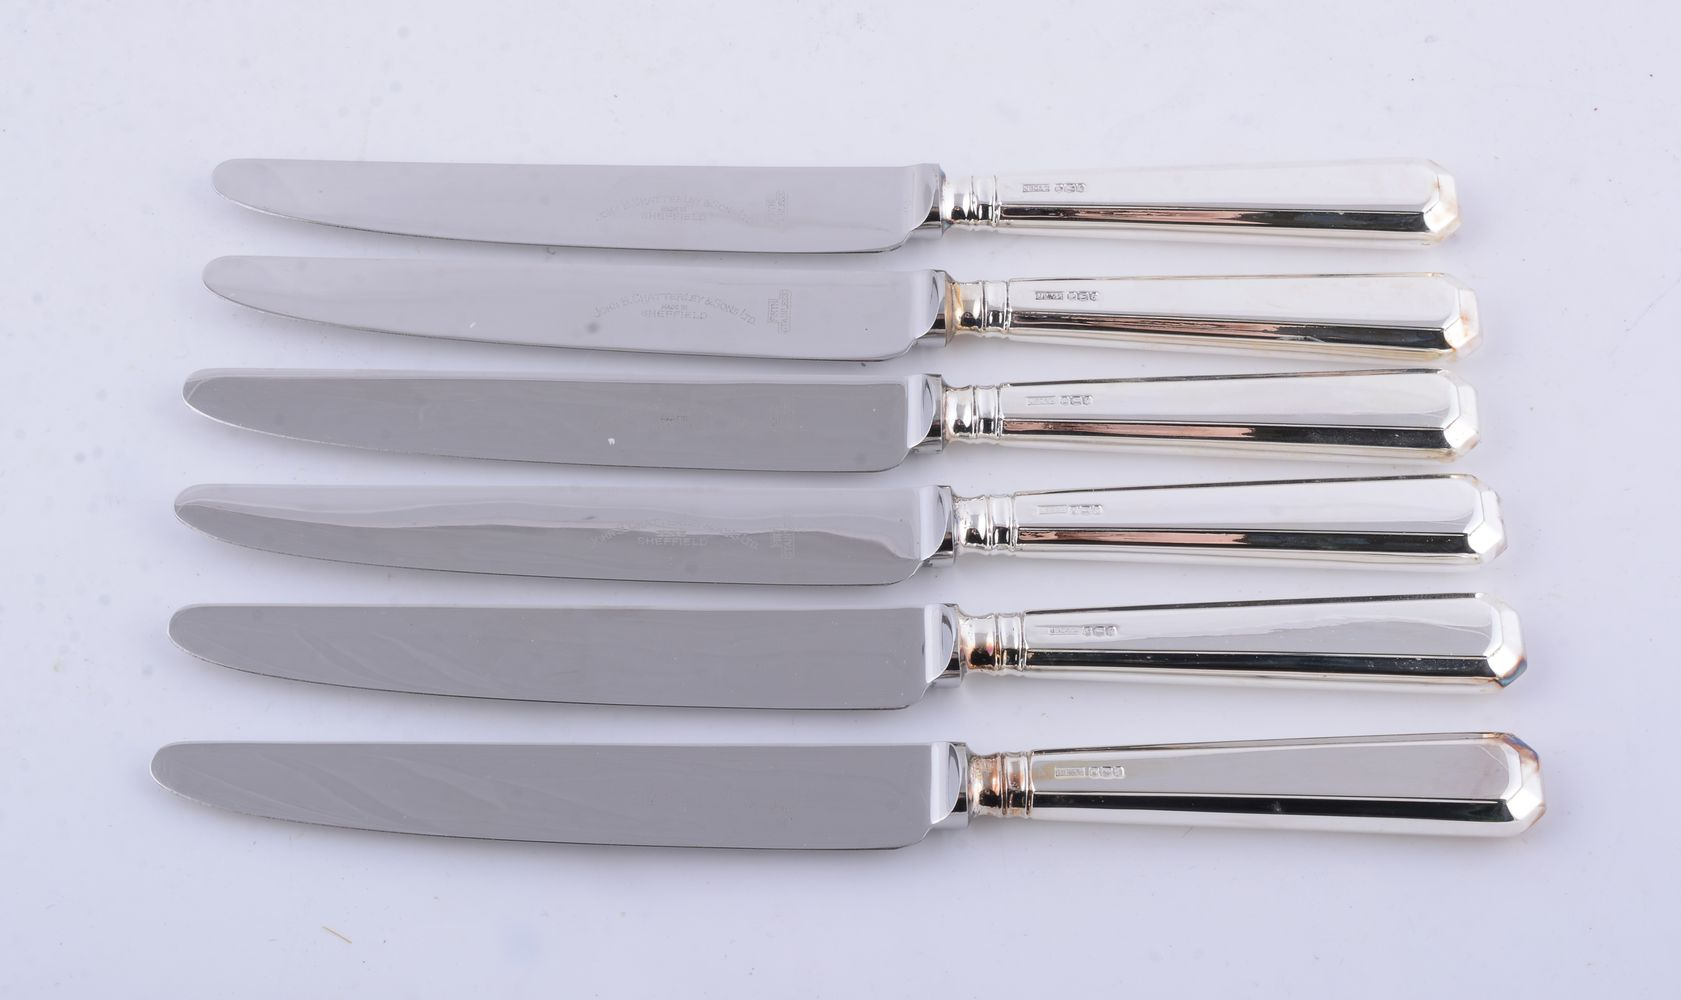 A set of six silver bevelled pattern handled table knives by J. B. Chatterley & Sons Ltd